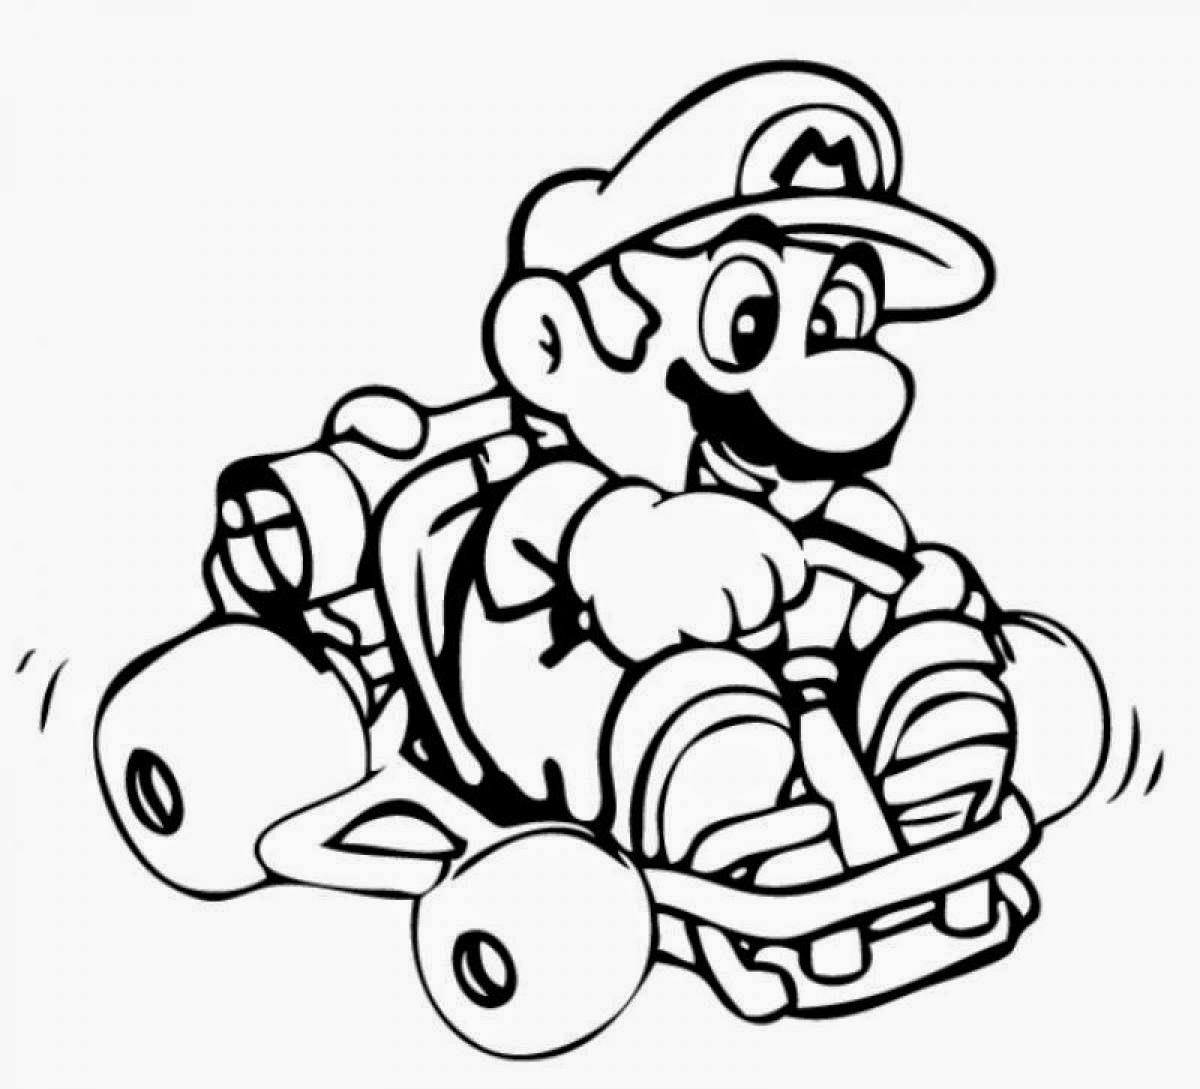 Colorful mario and luigi coloring pages printable sketch for King boo coloring pages